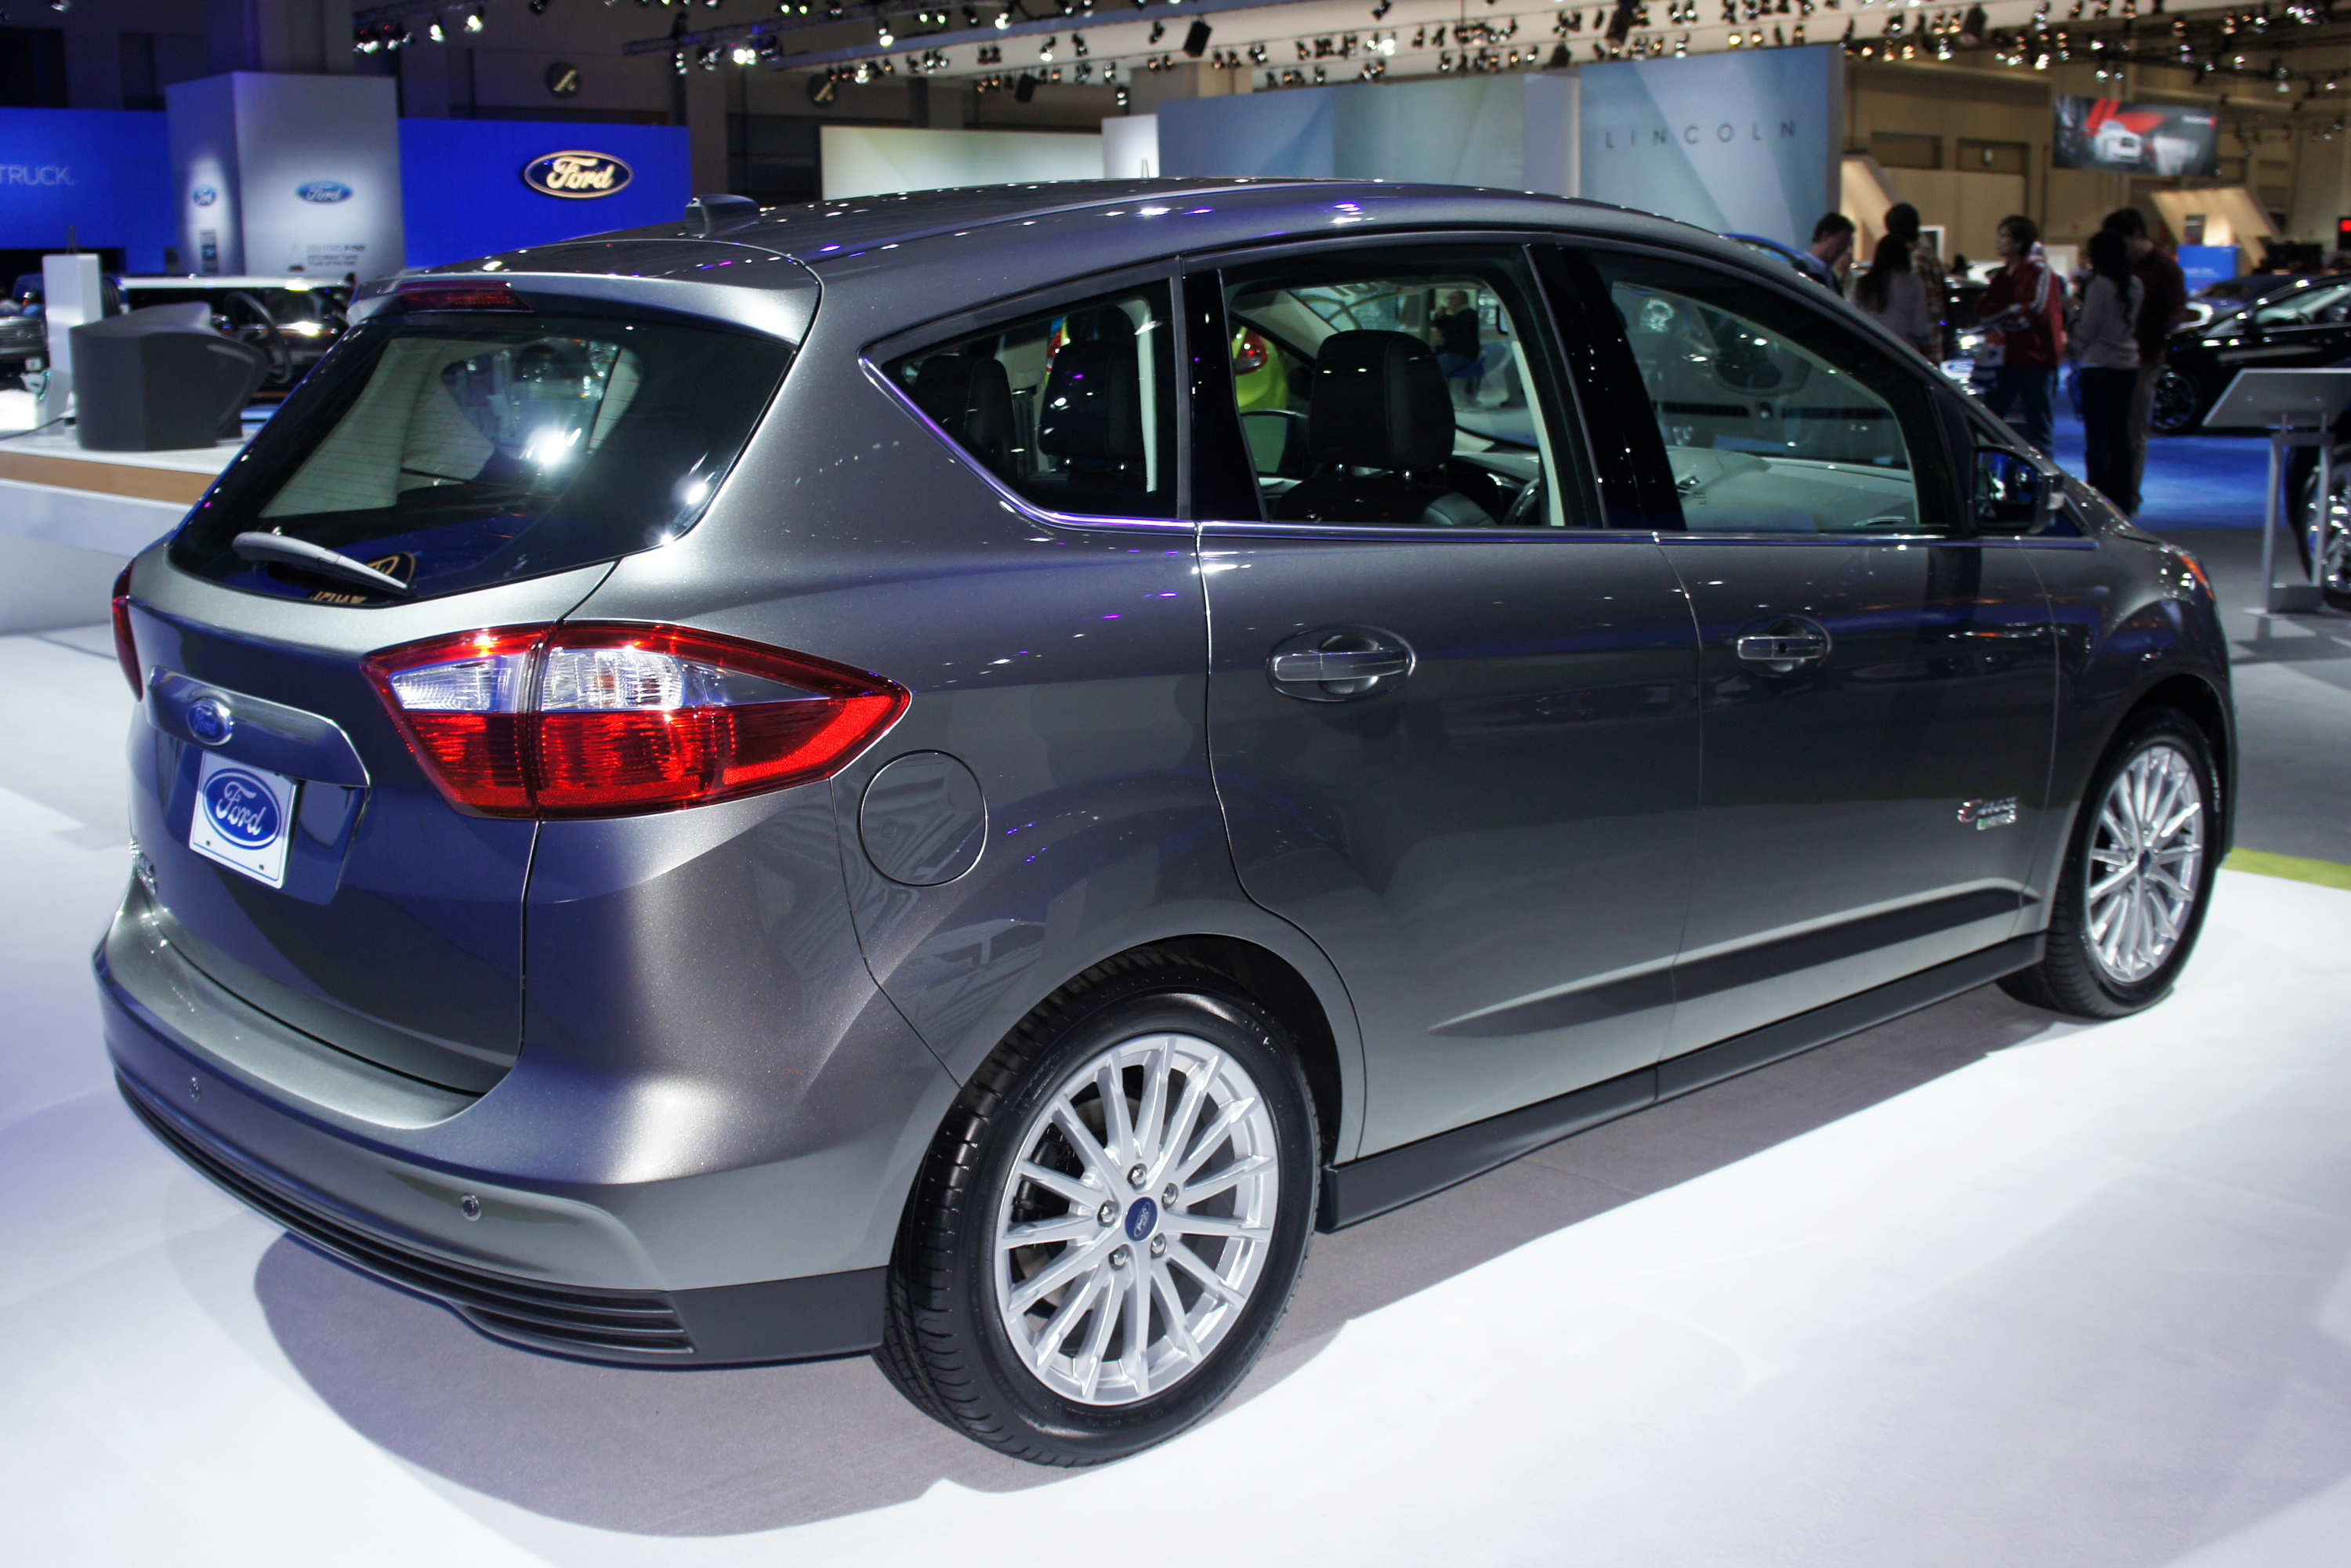 2012 Ford C-Max #5